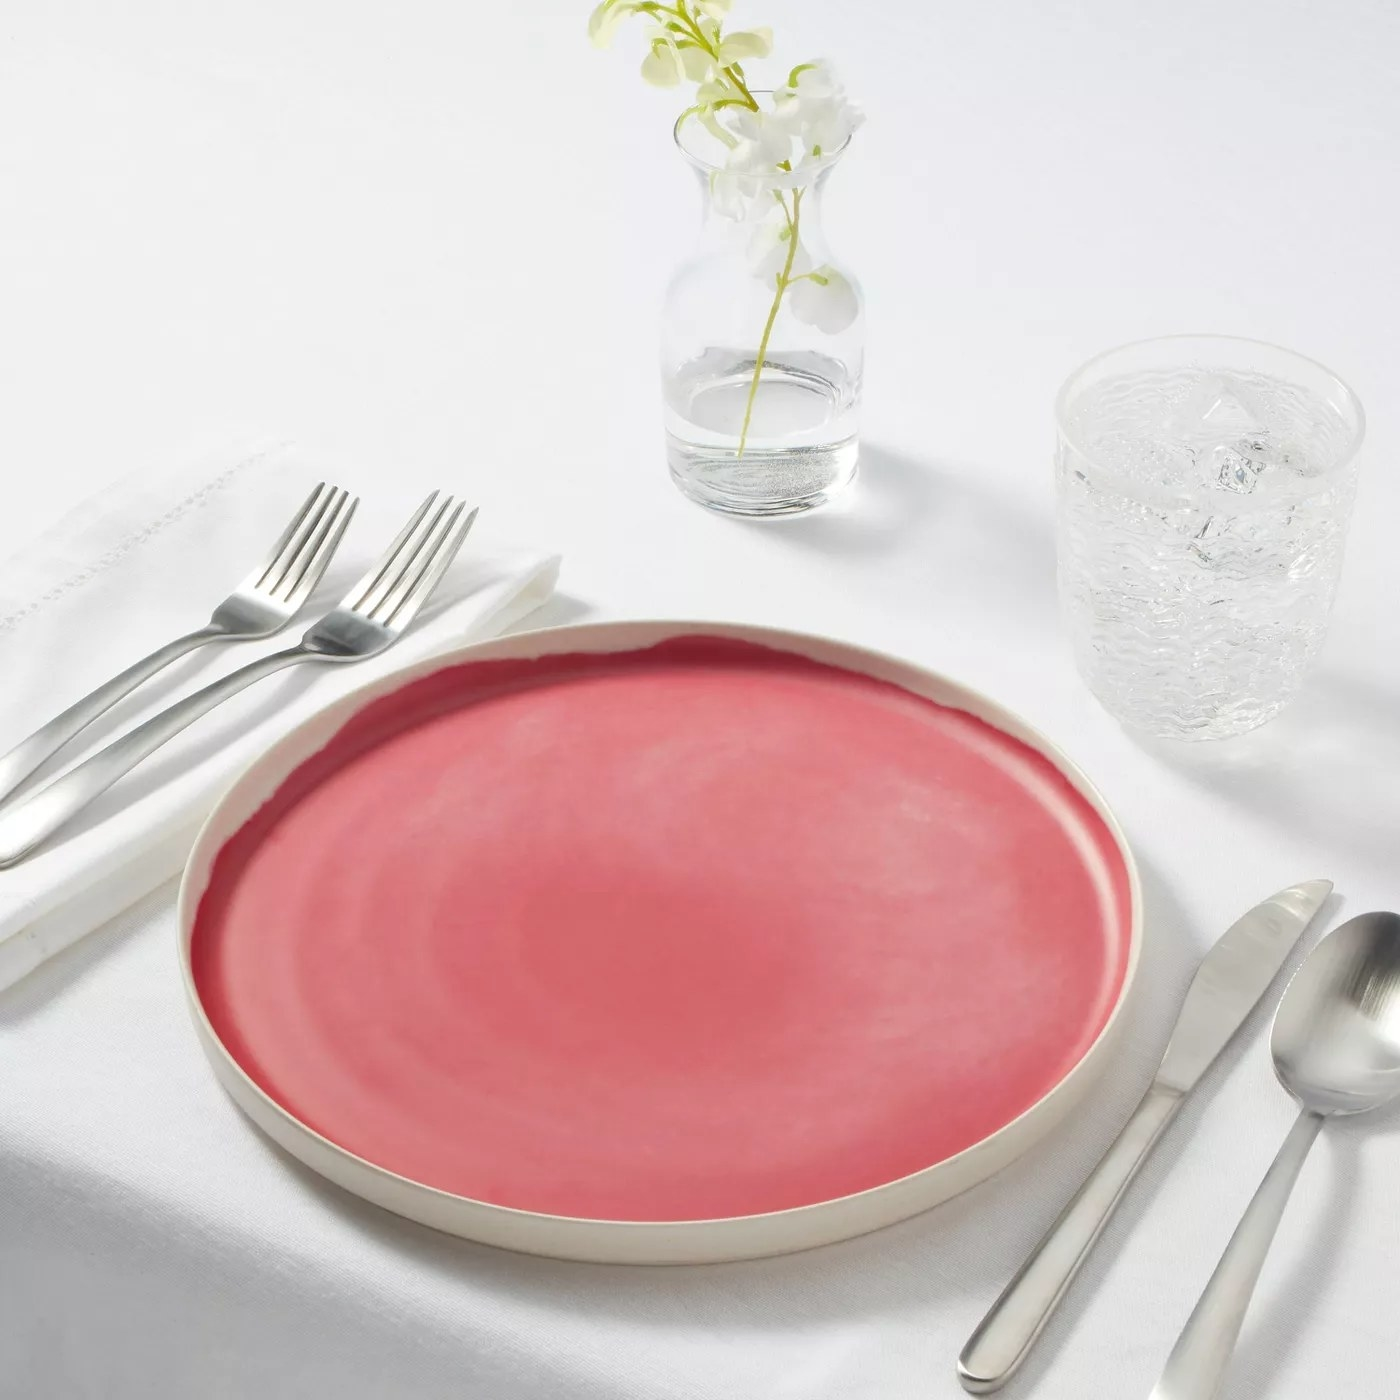 The bright pink plate is on an all white table setting